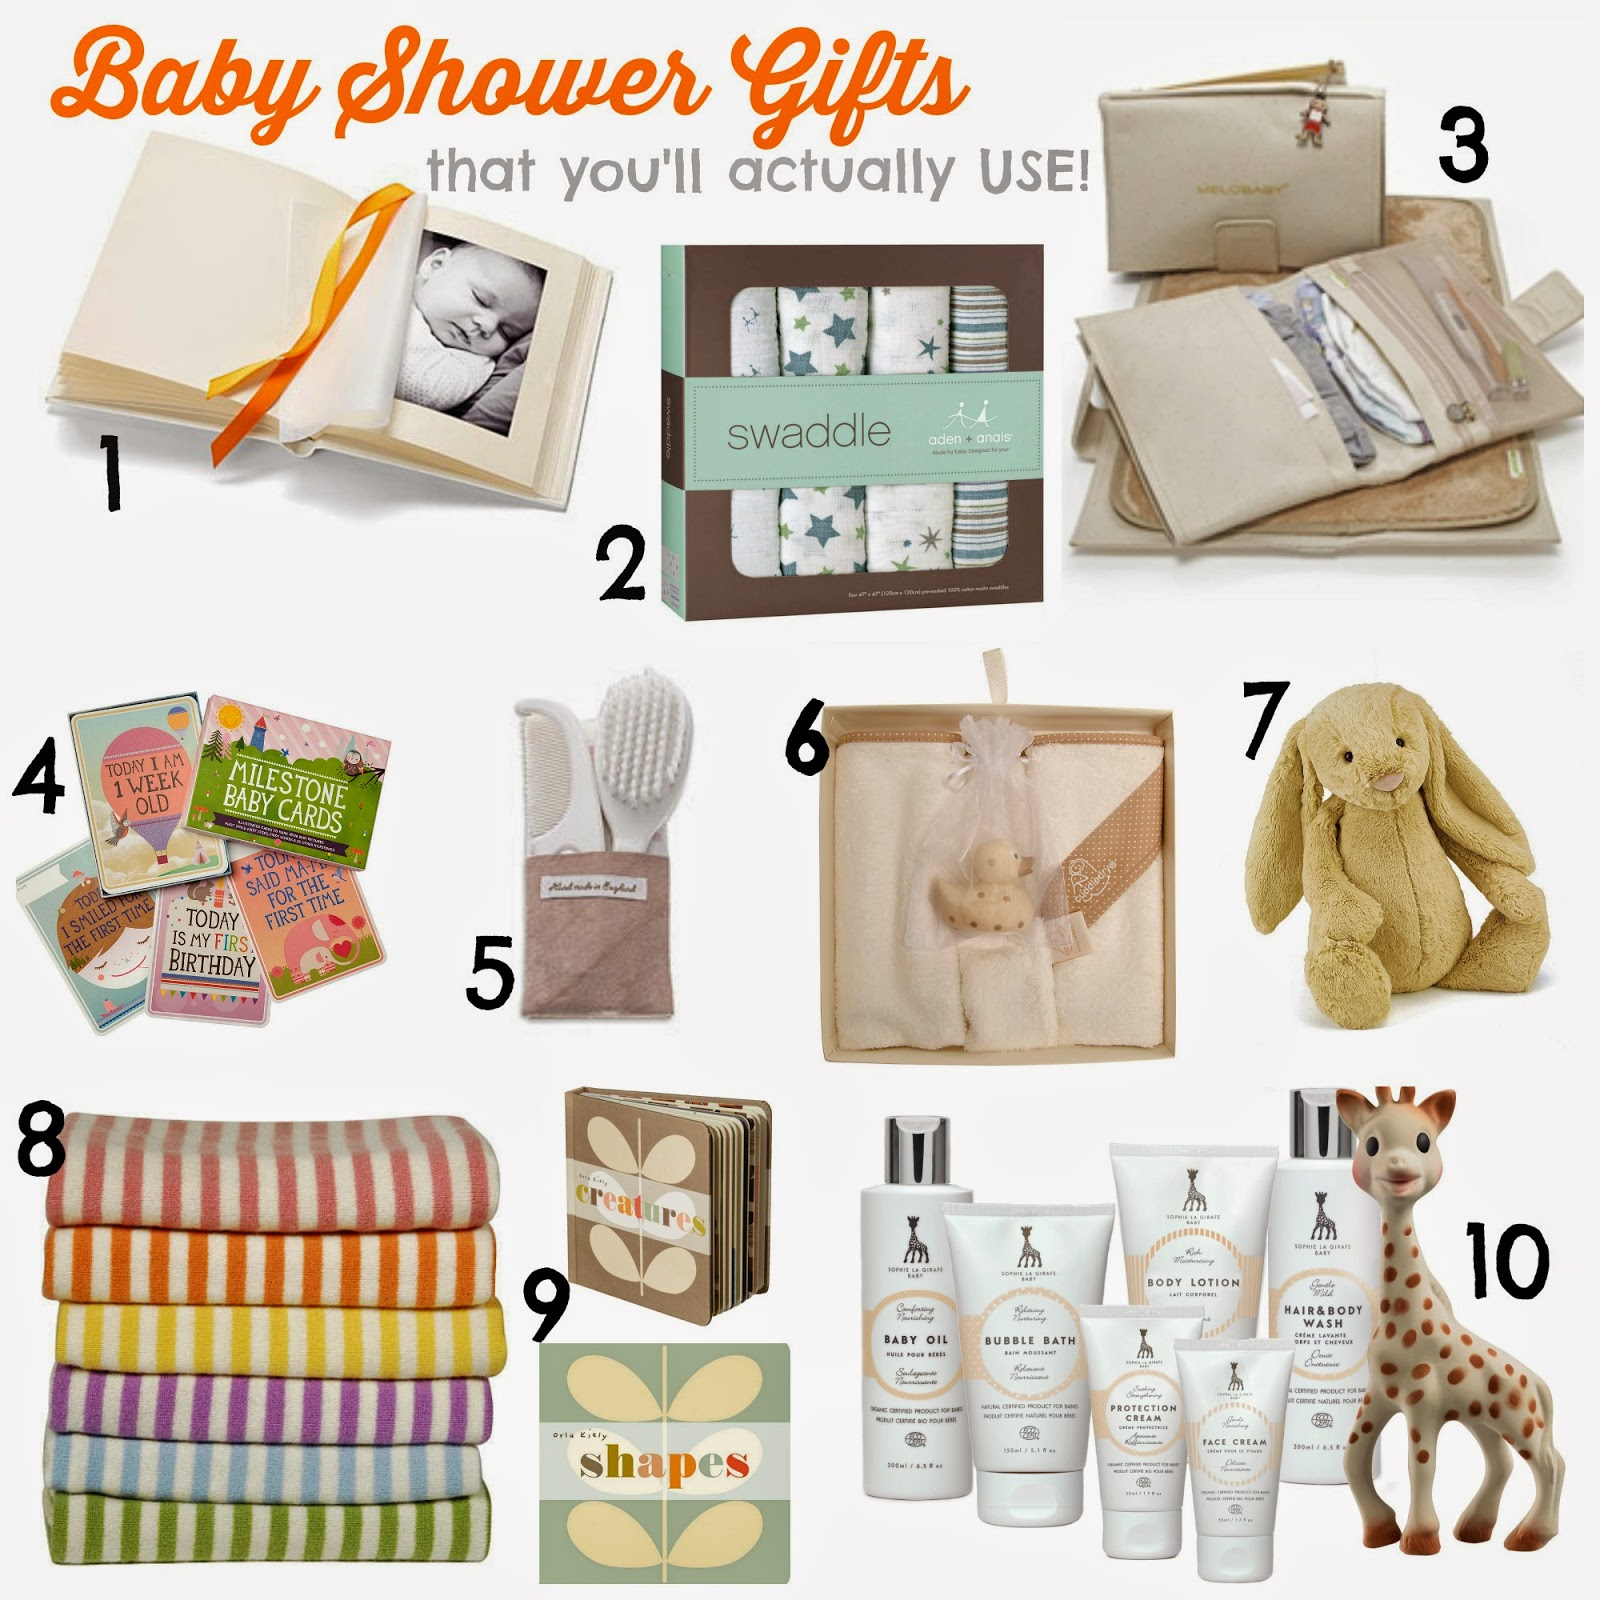 wonderfull gifts ideas baby good shower mom gift ba charming x size showers for best design